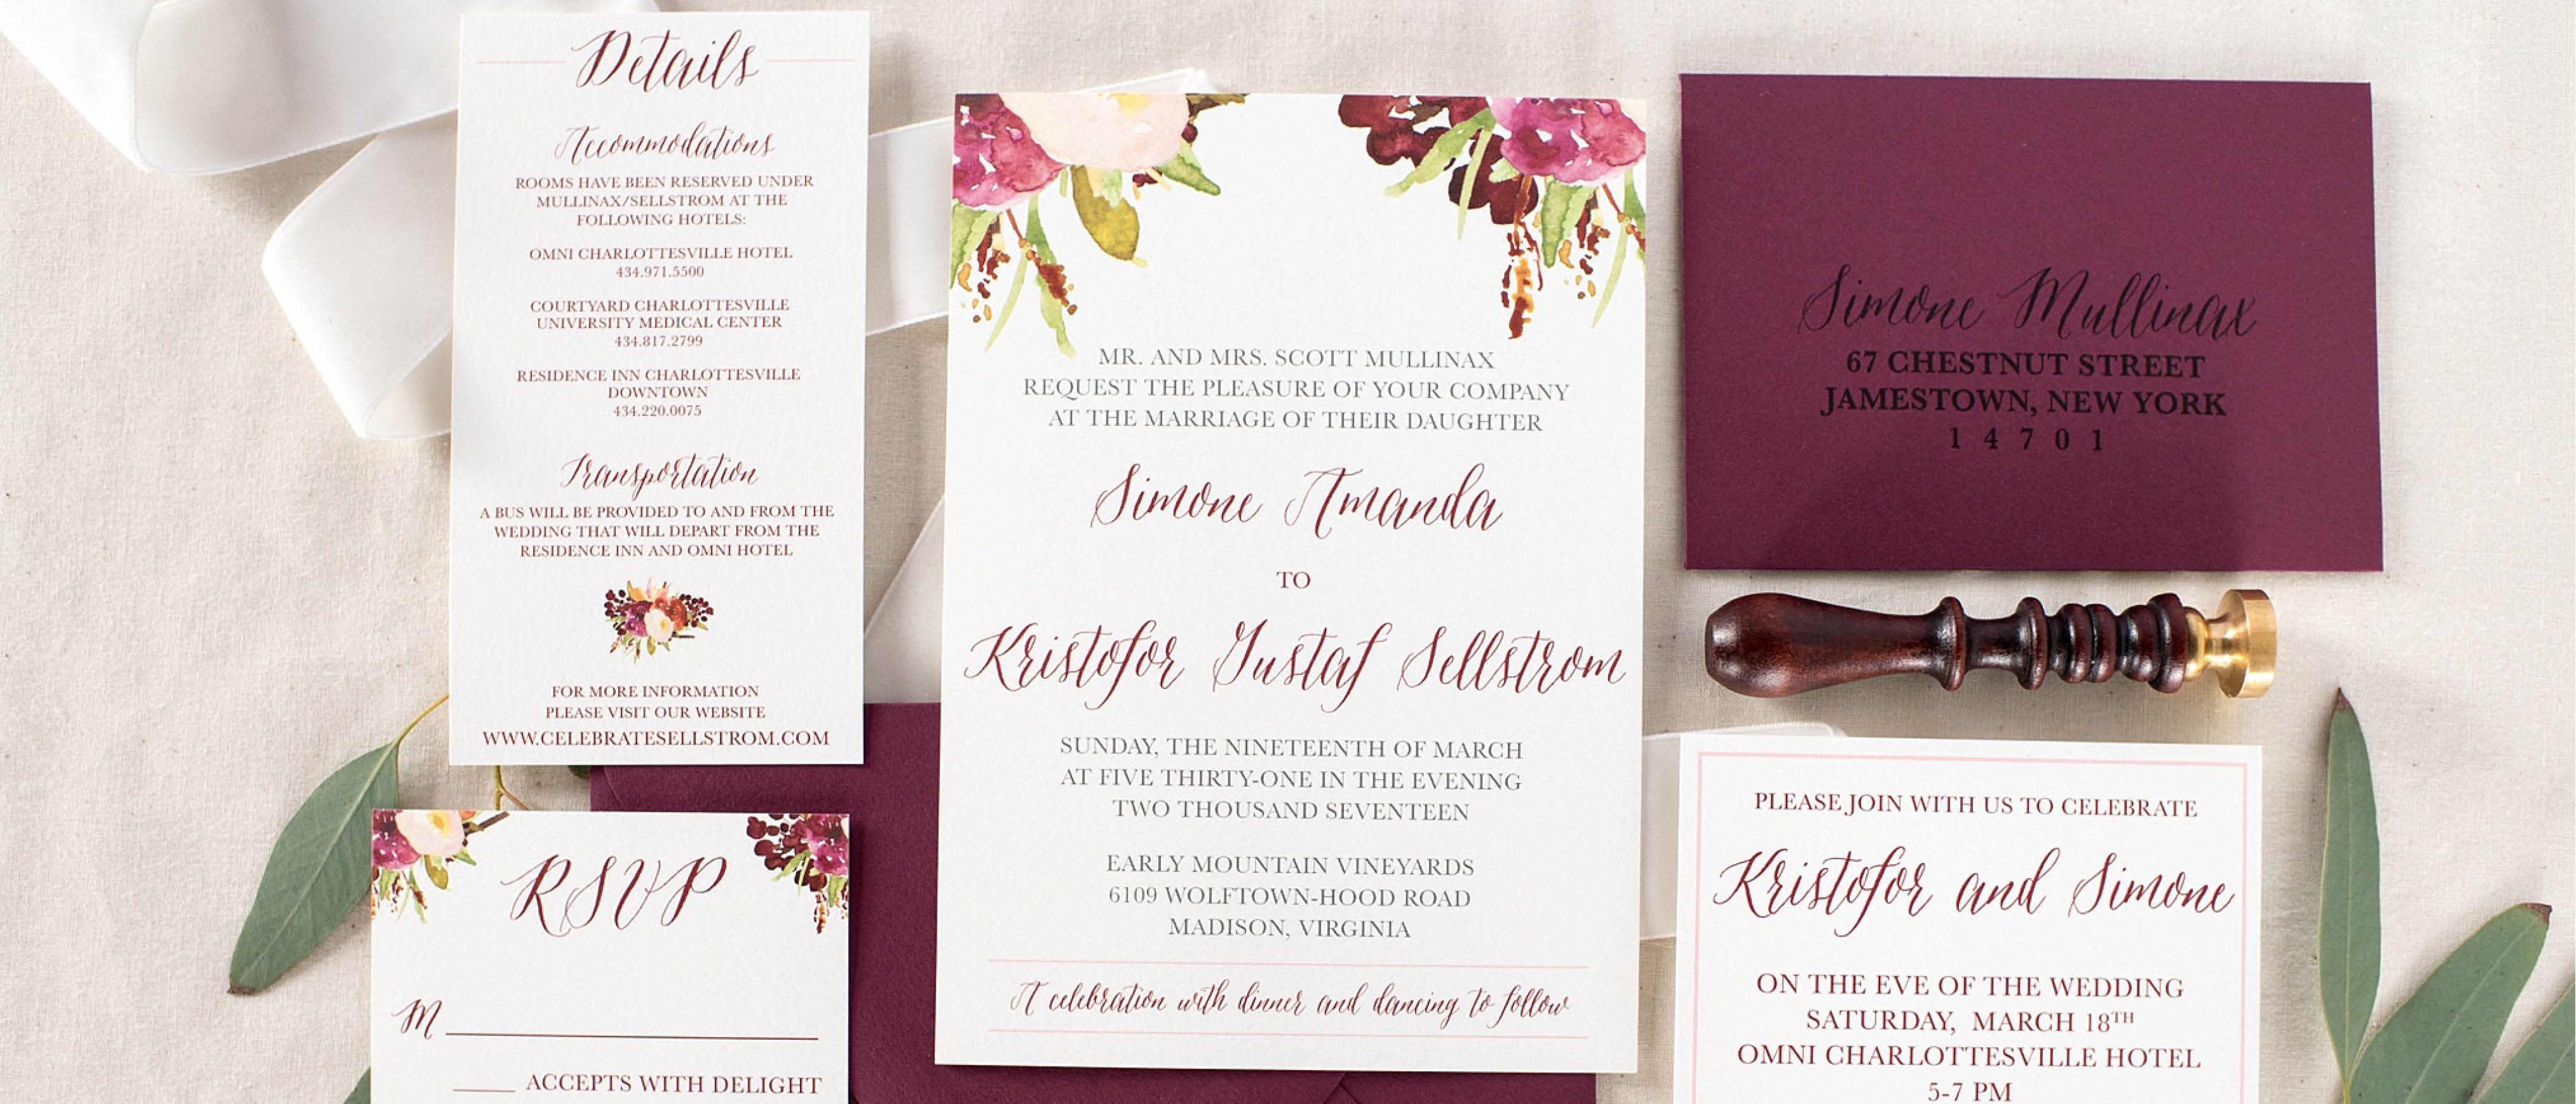 Free Samples Wedding Invitations: Burgundy Floral Marsala Wedding Invitation Sample